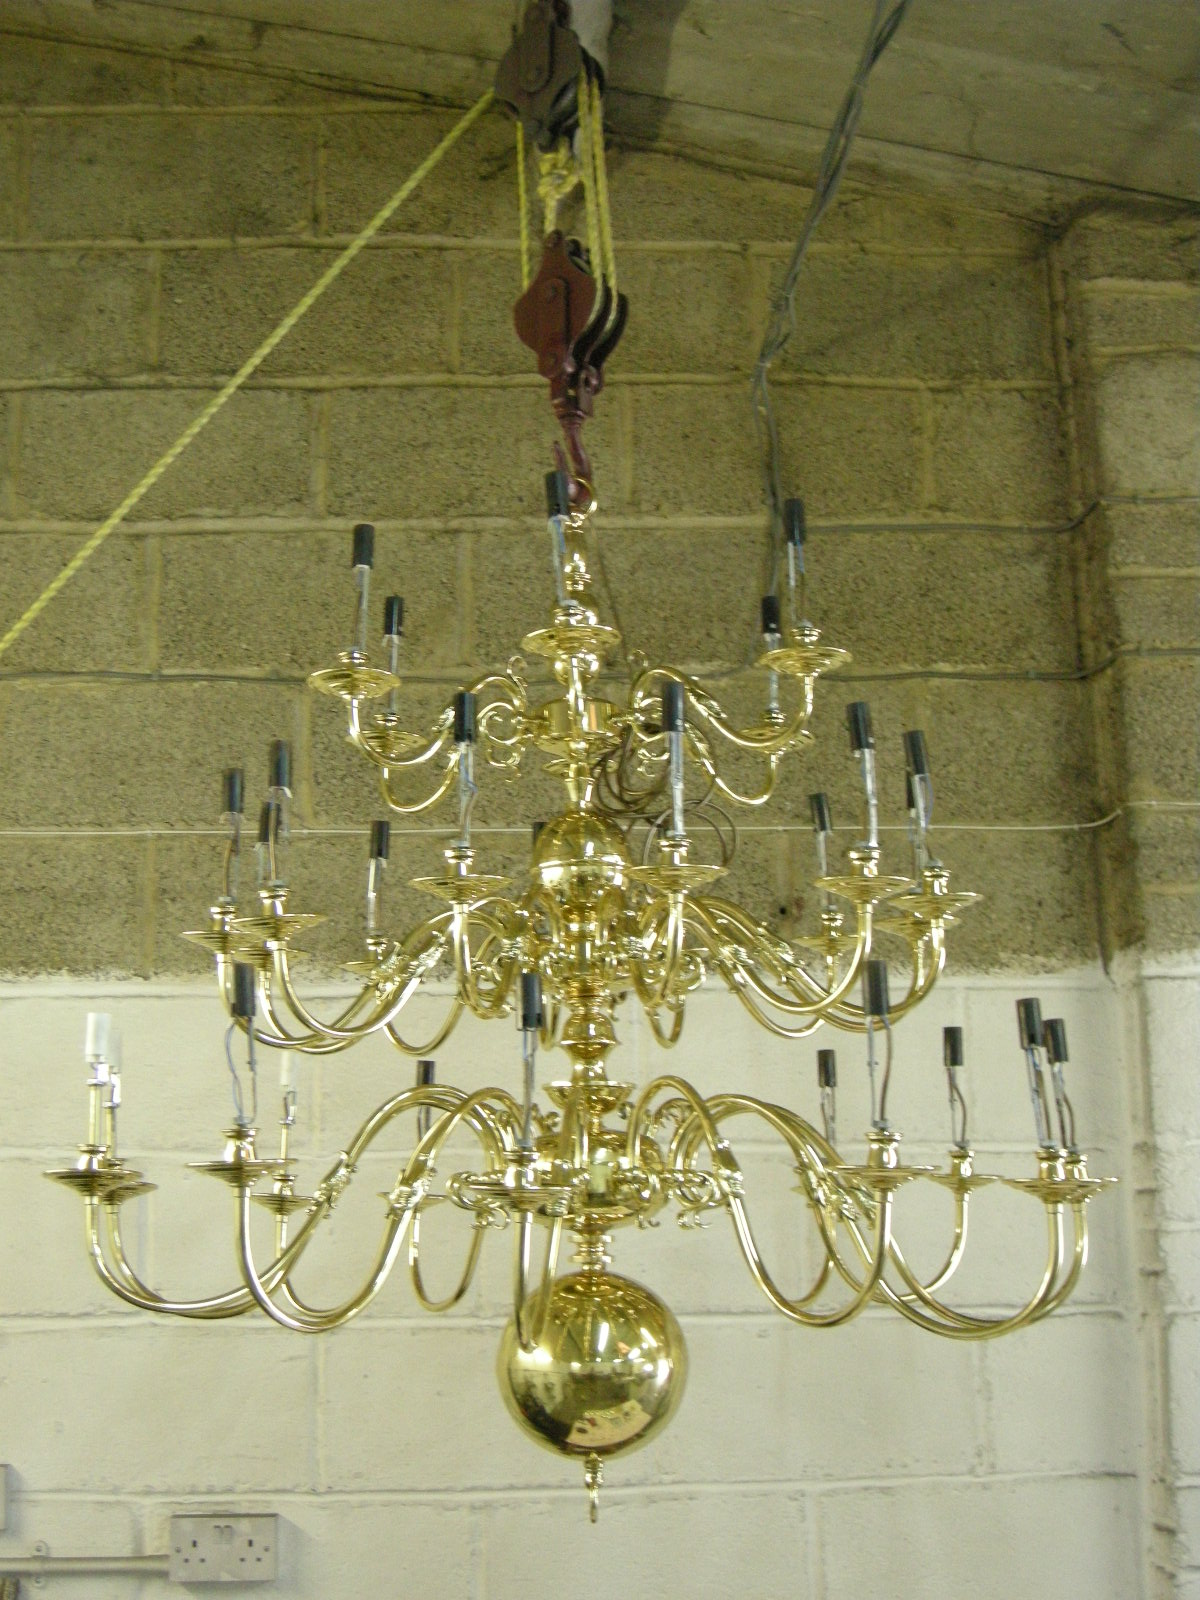 30 arm chandelier after restoration